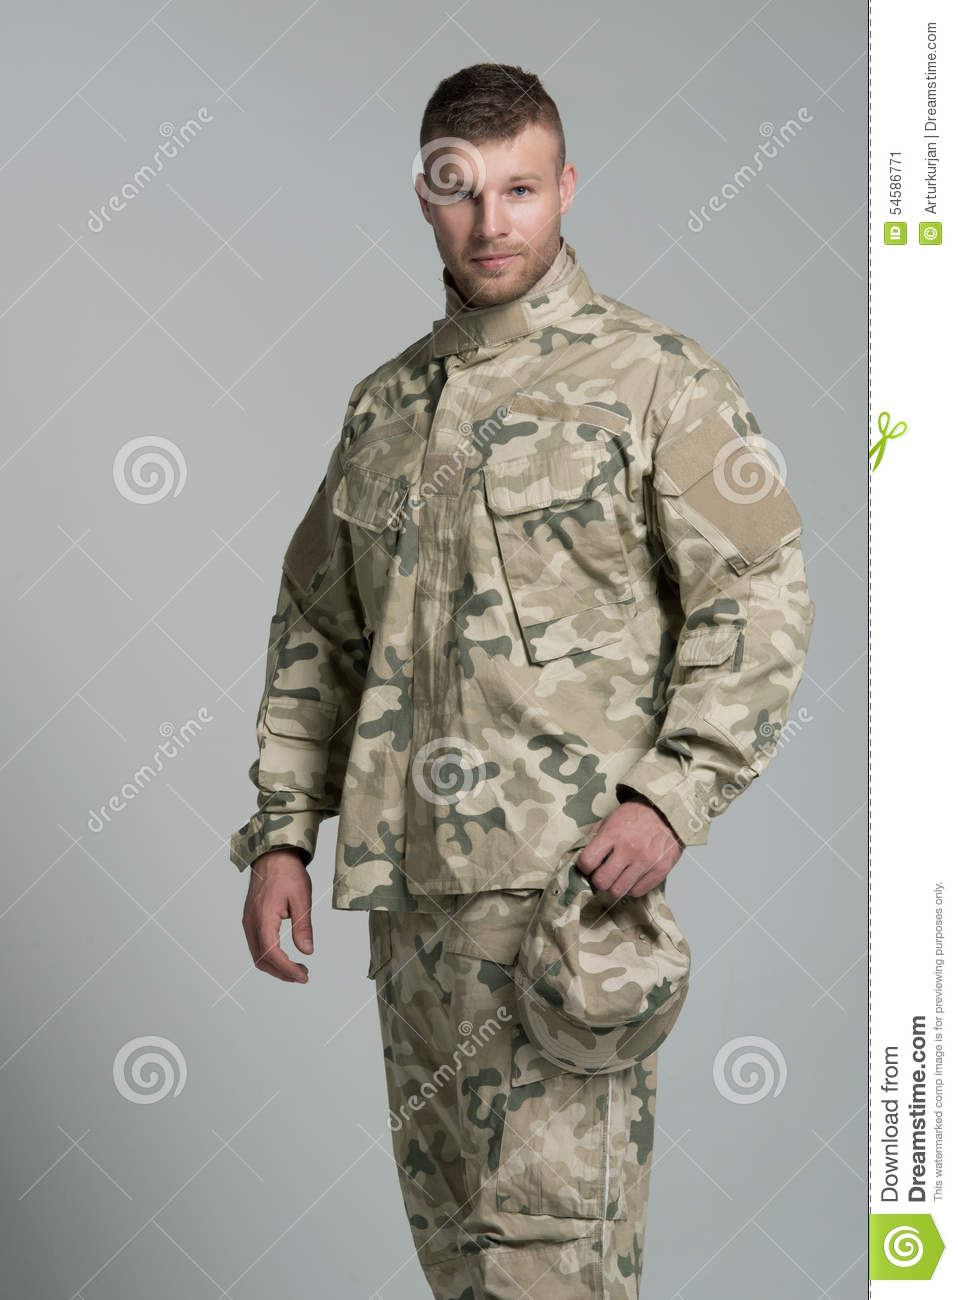 Not know, Muscle men in military uniform the